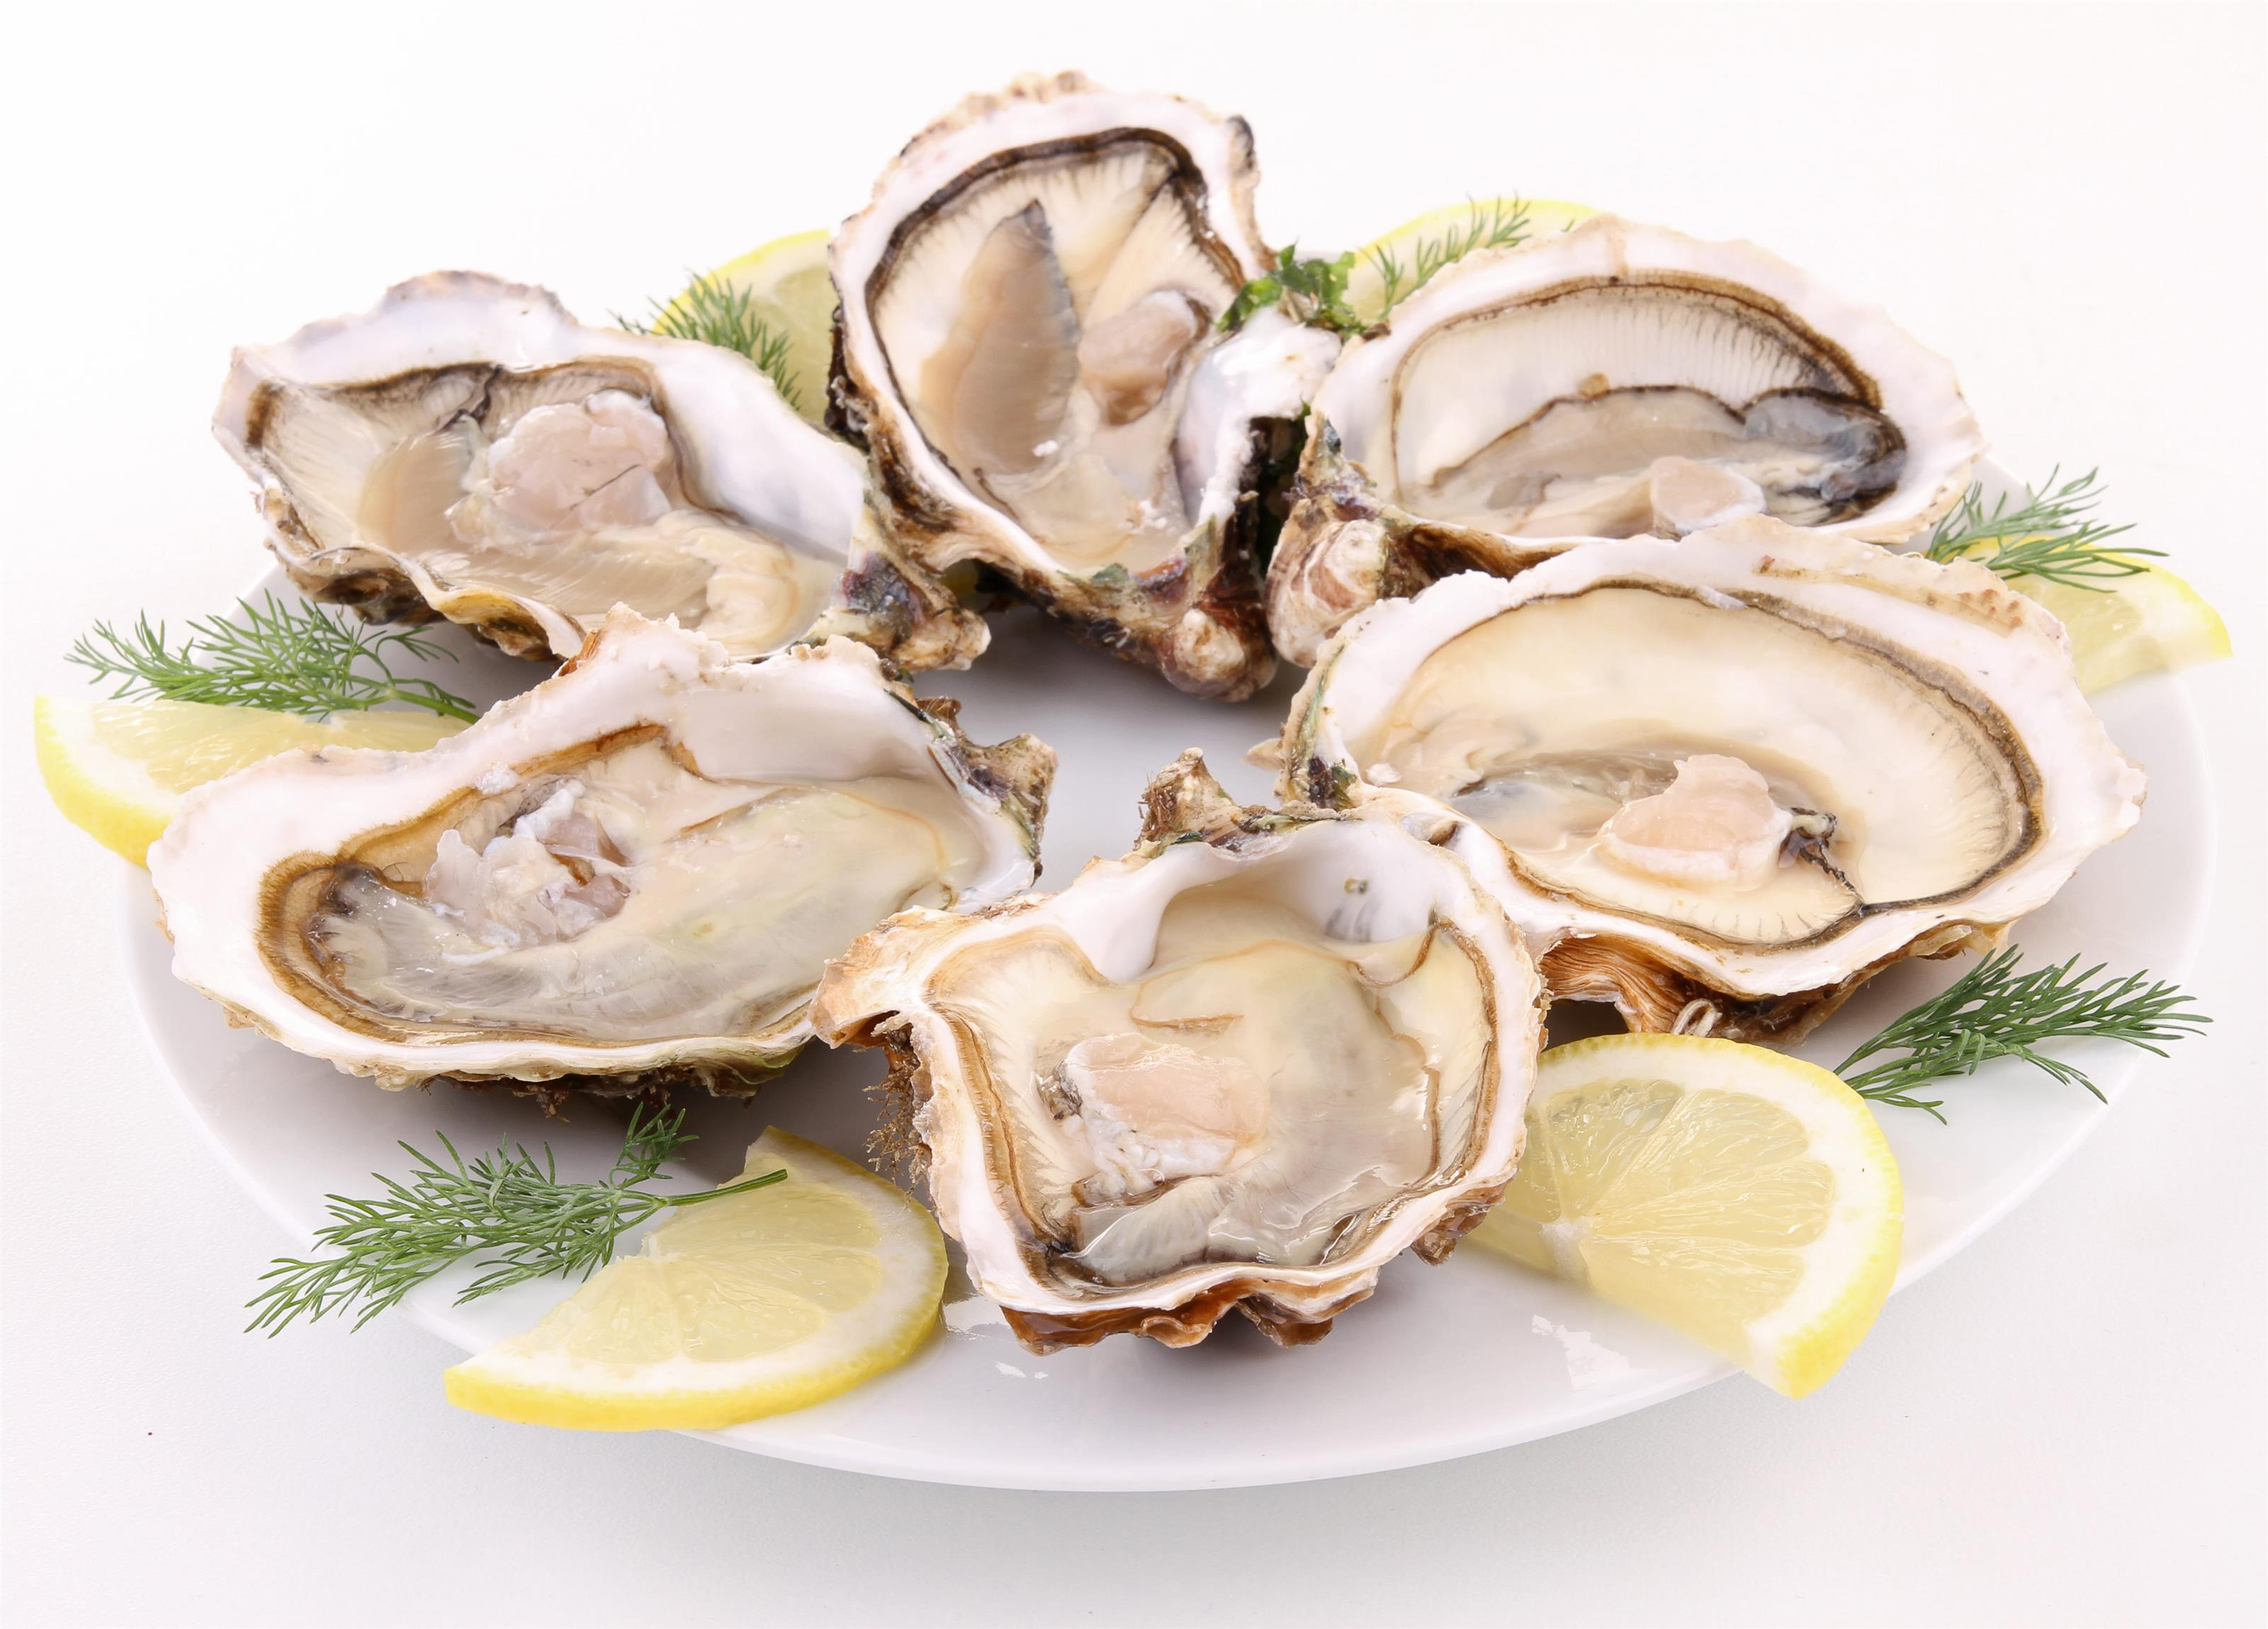 Six oysters on the half shell on a plate with lemon slices